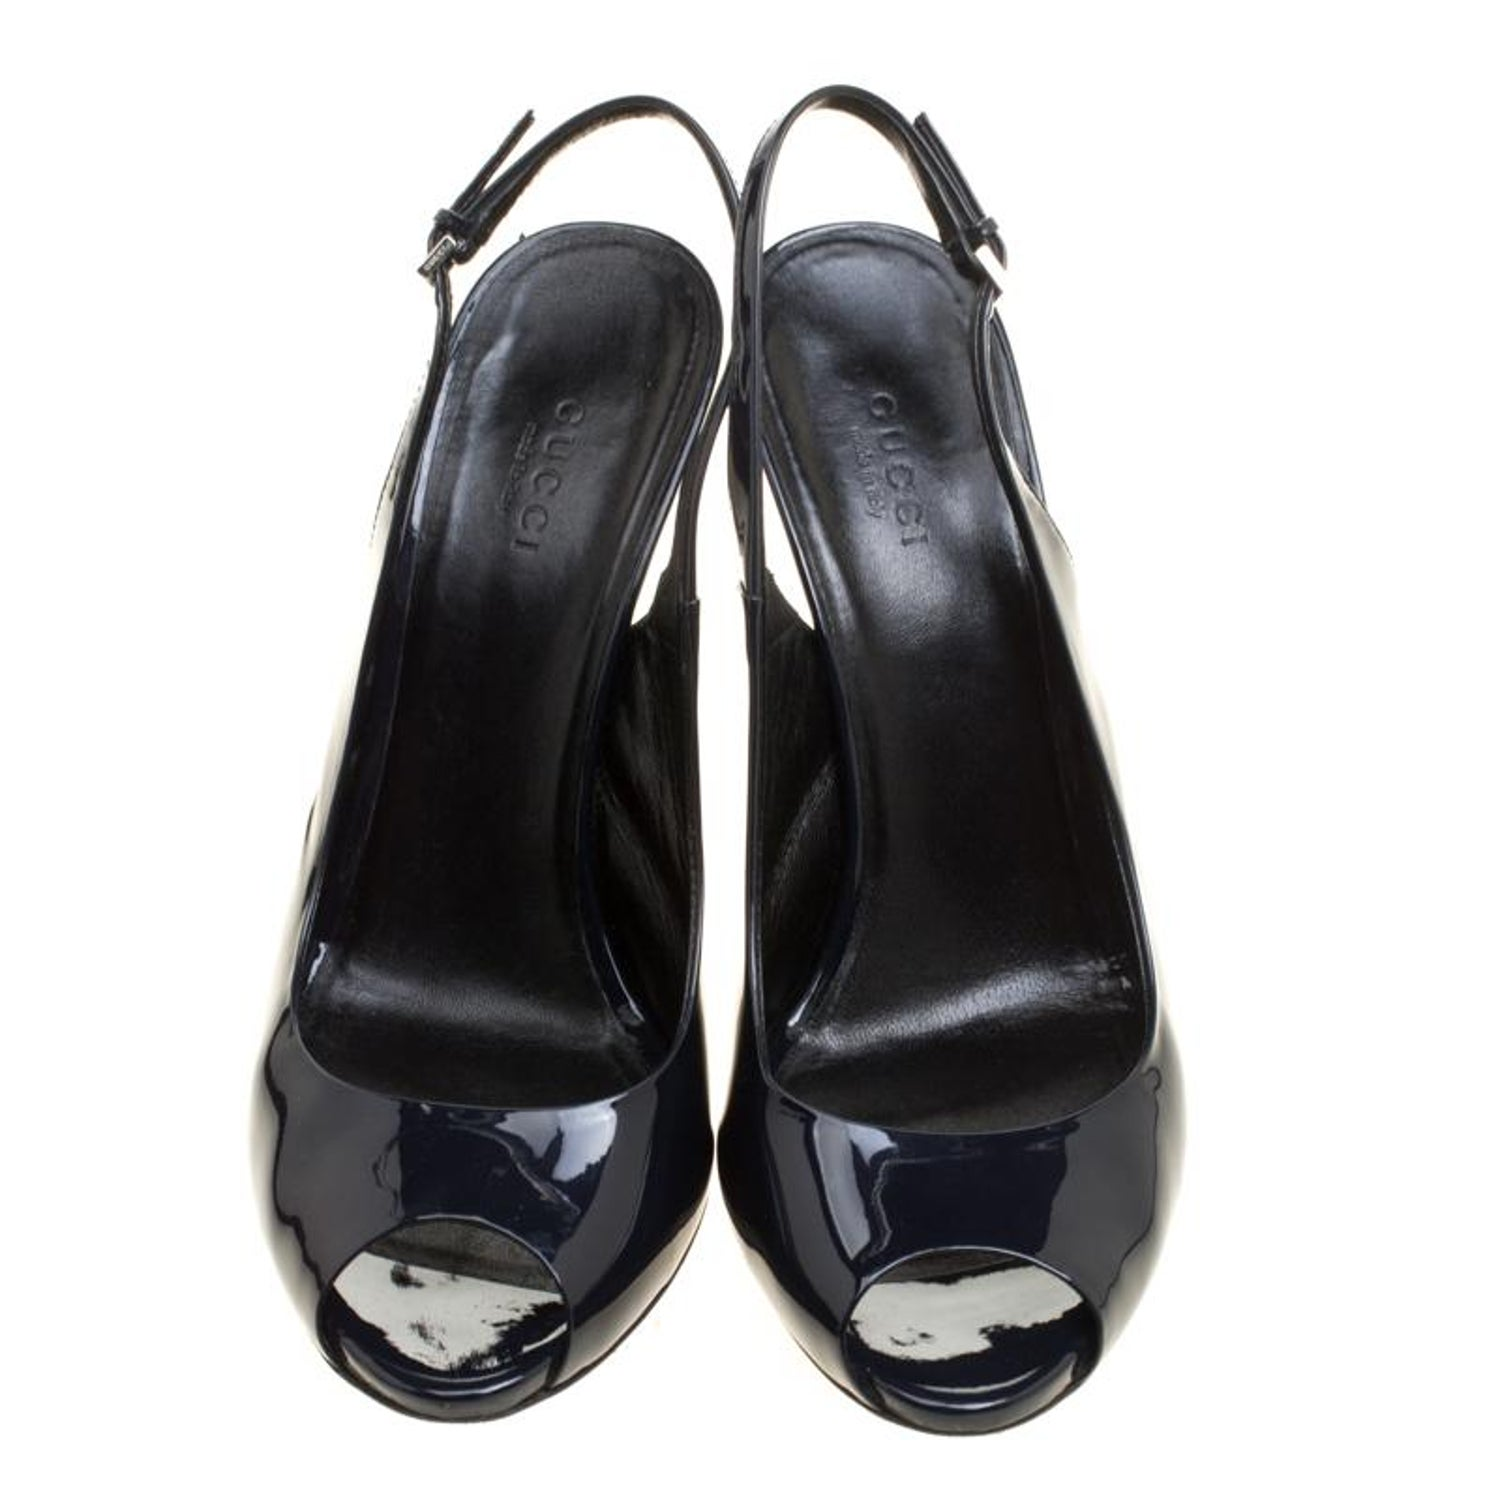 c47327ad15b Gucci Navy Blue Patent Leather Peep Toe Slingback Sandals Size 38 For Sale  at 1stdibs